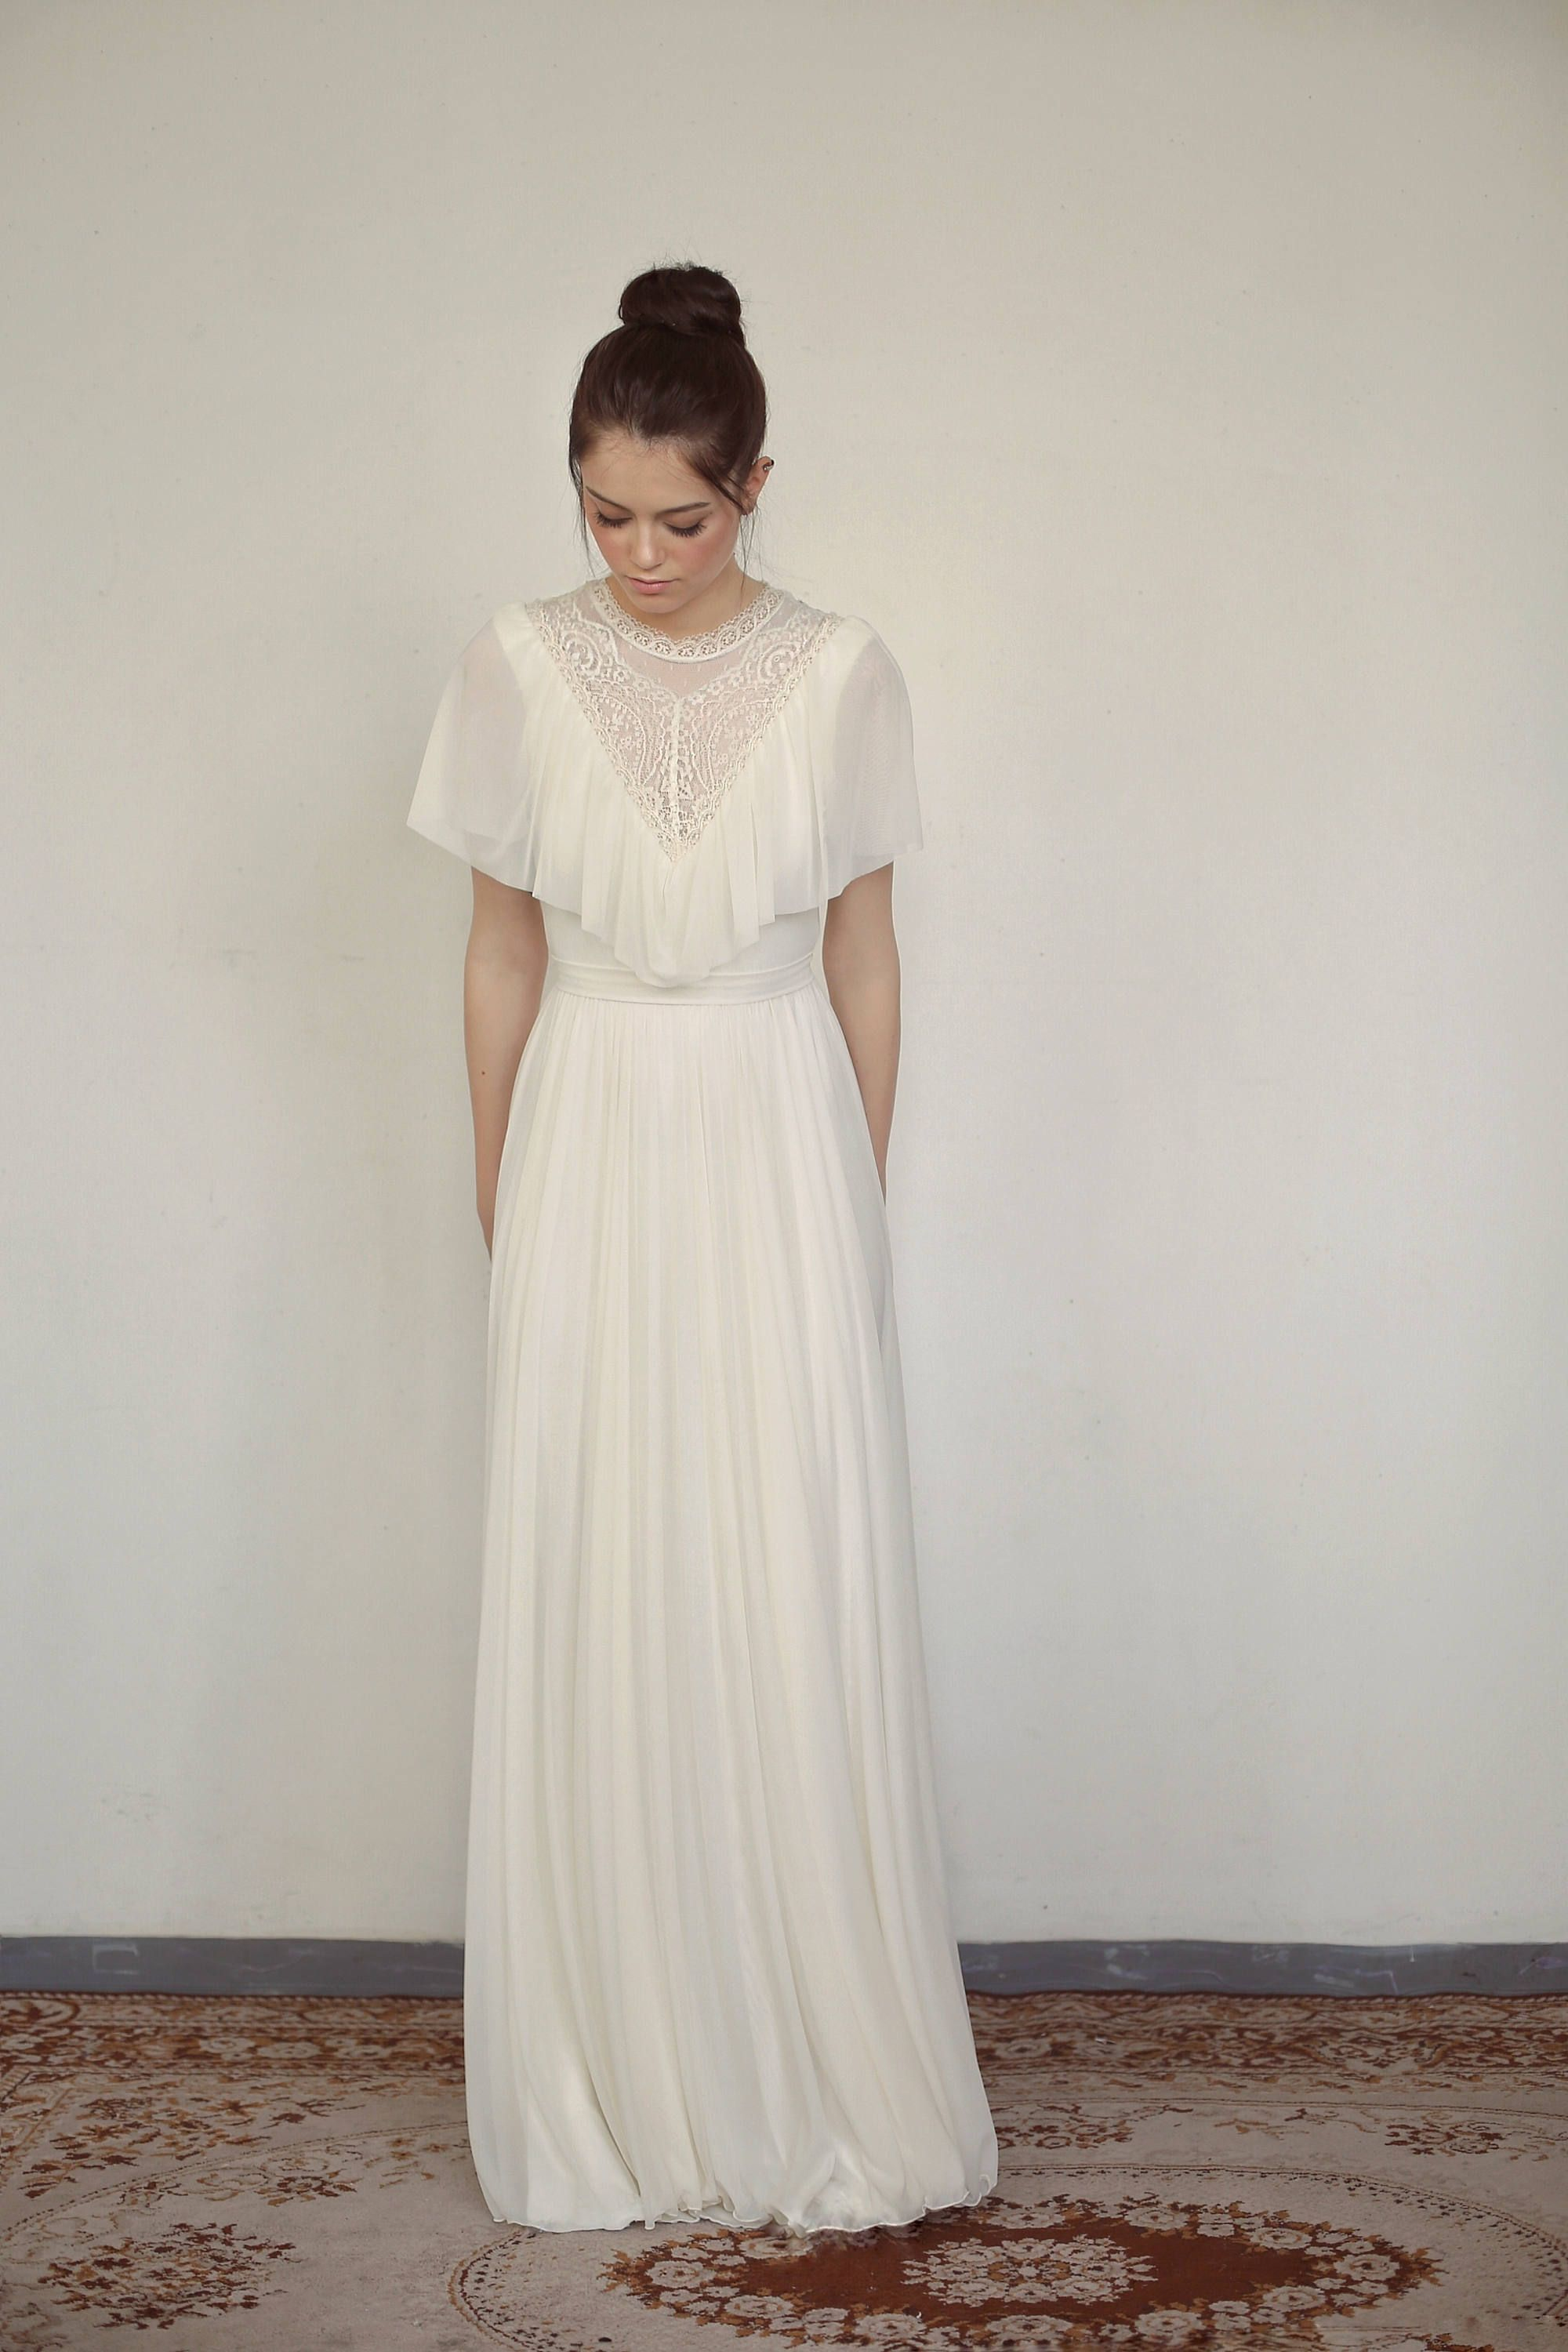 Modest wedding dress ivory wedding dress high neck wedding dress